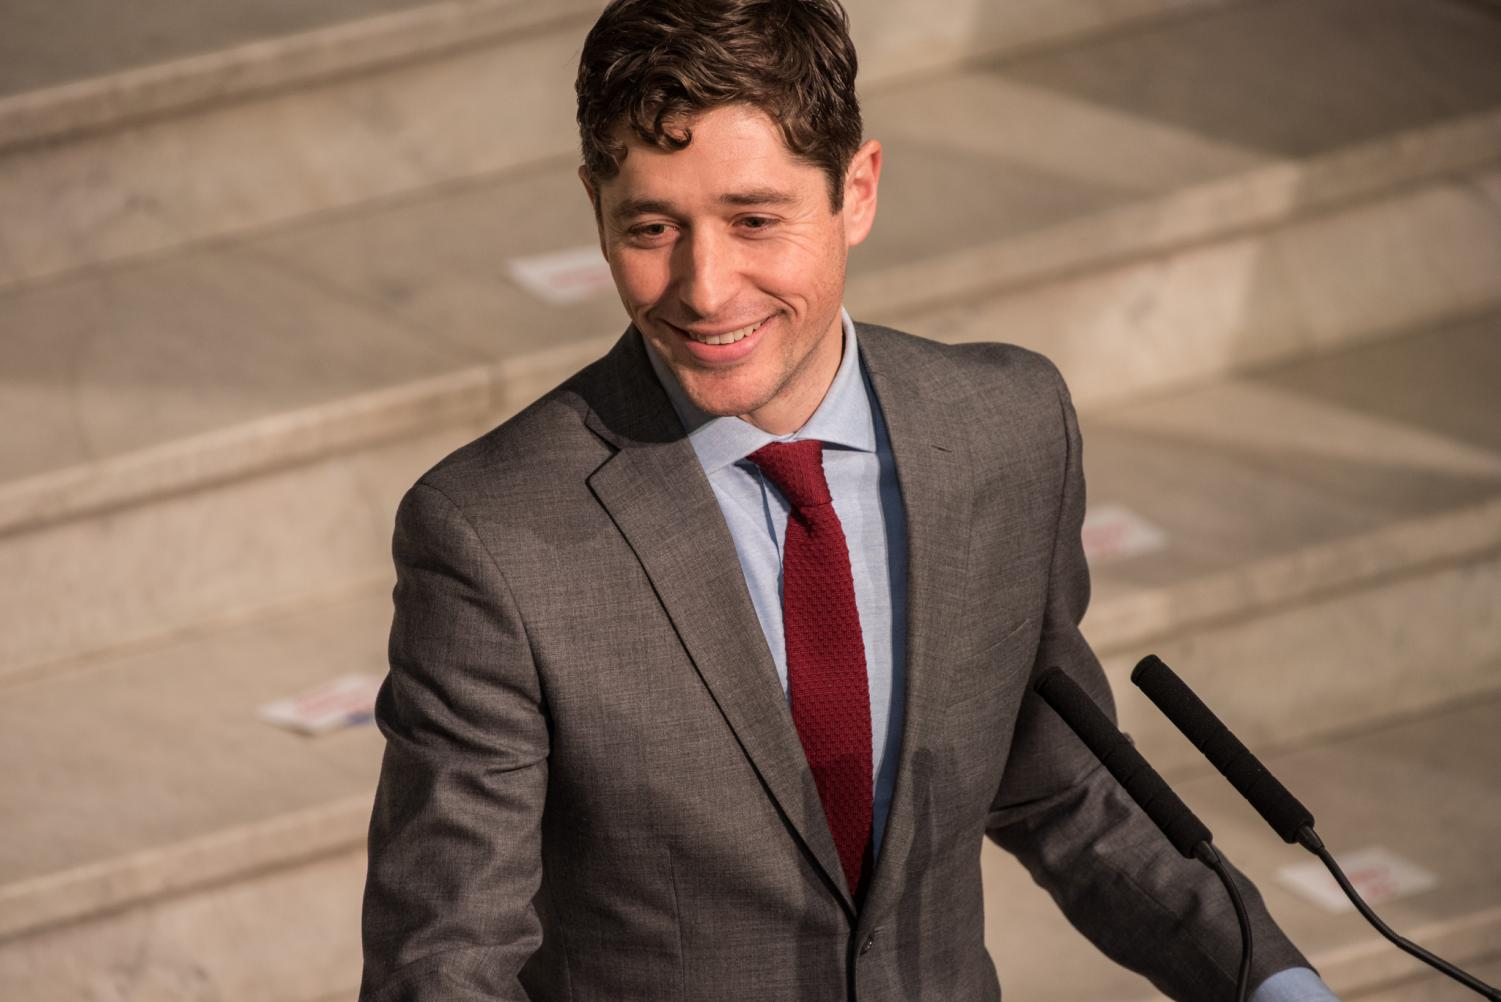 After running the Twin Cities Marathon, Jacob Frey decided that Minneapolis was his forever-home. Now, as the the Mayor of Minneapolis, Frey works to increase affordable housing and gun control bans to better the city.